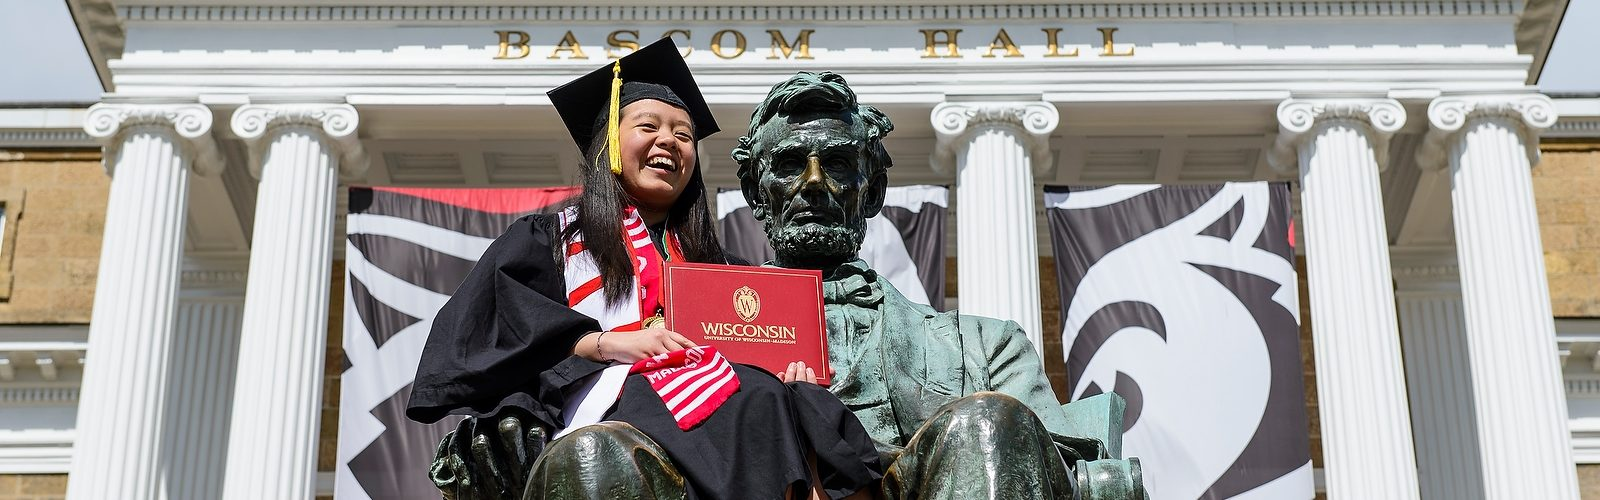 Soon-to-be-graduate Yer Thor is pictured on the Abraham Lincoln statue in front of Bascom Hall before the start of UW-Madison's spring commencement ceremony at Camp Randall Stadium at the University of Wisconsin-Madison on May 14, 2016. The outdoor graduation is expected to be attended by approximately 5,600 bachelor's and master's degree candidates and their guests. (Photo by Bryce Richter / UW-Madison)